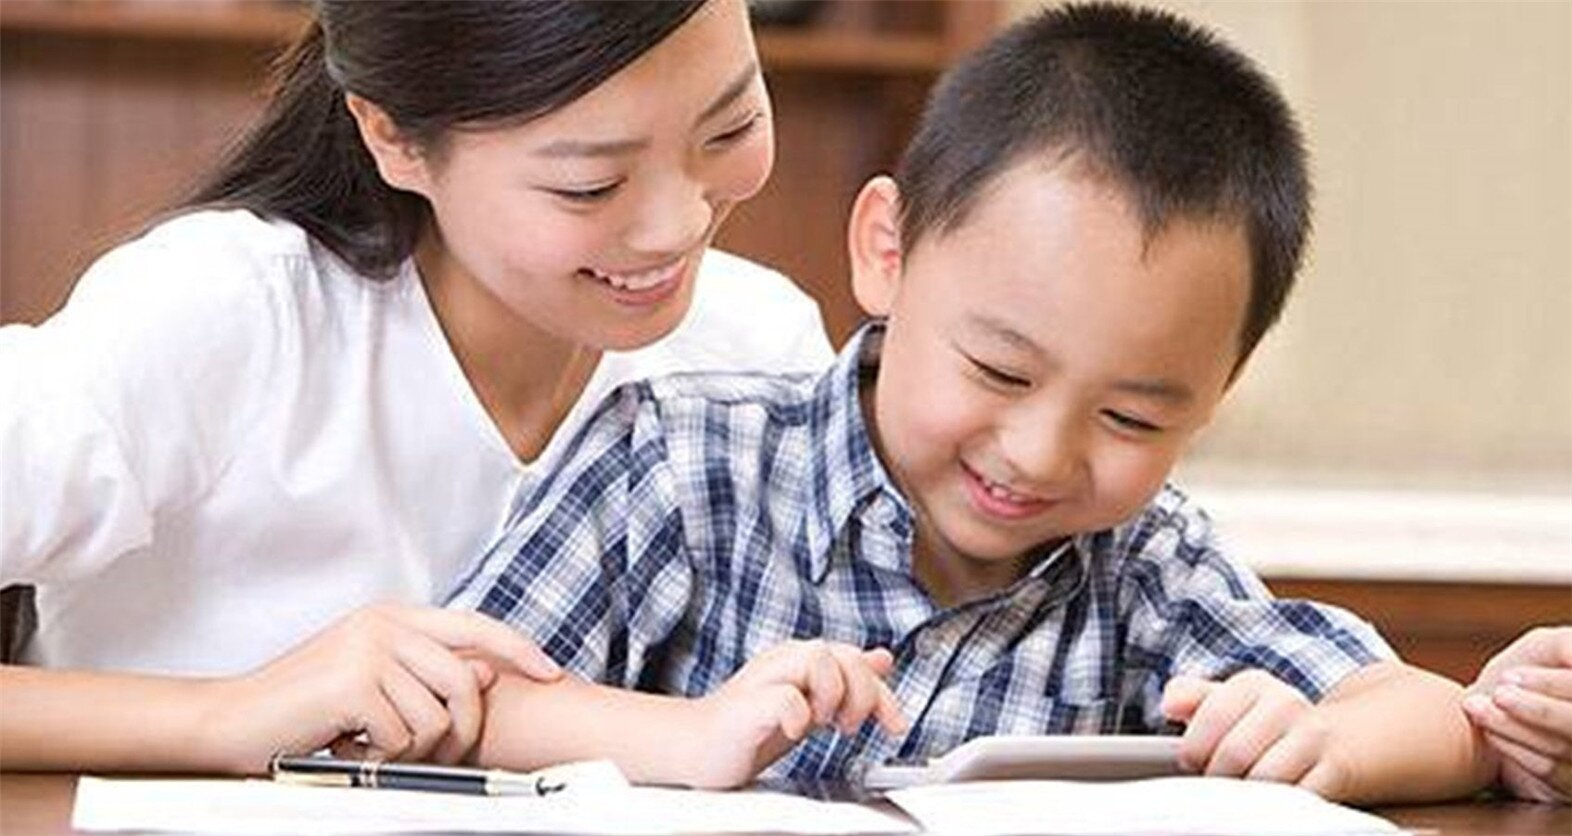 Seven problems your child faces when learning English. How many of your children have these?